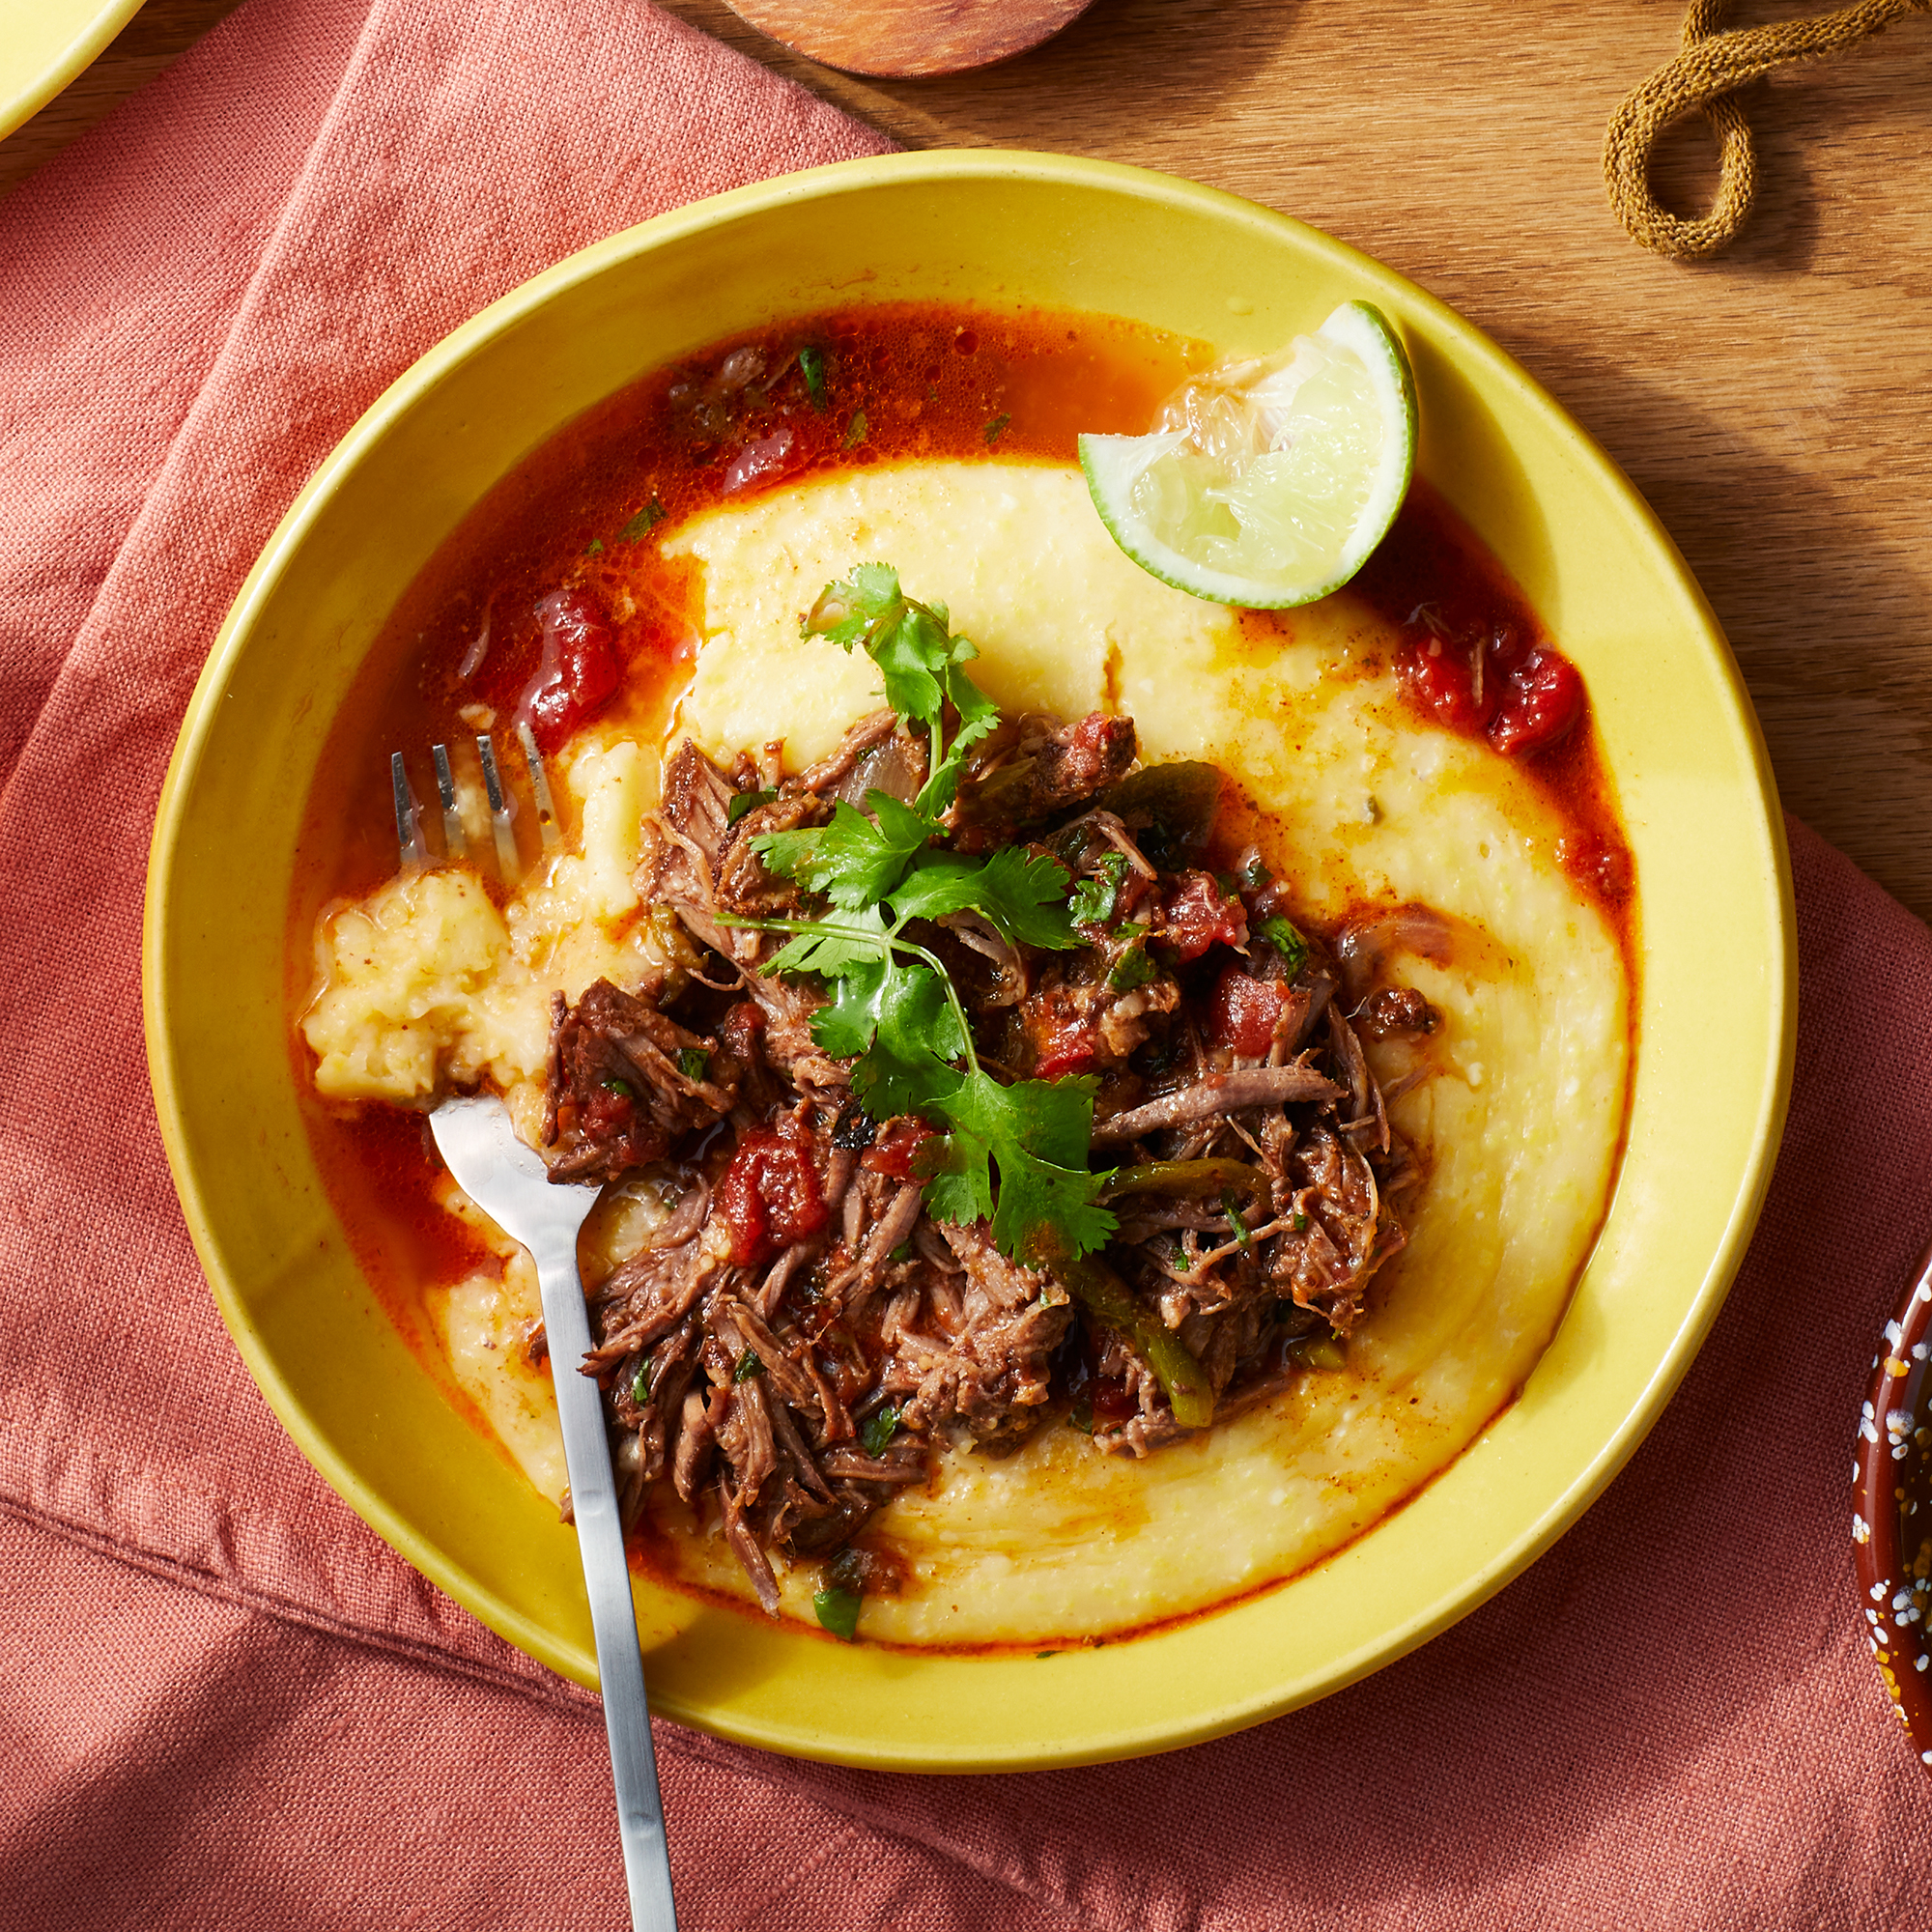 Chile-Spiced Shredded Beef with Cheesy Polenta